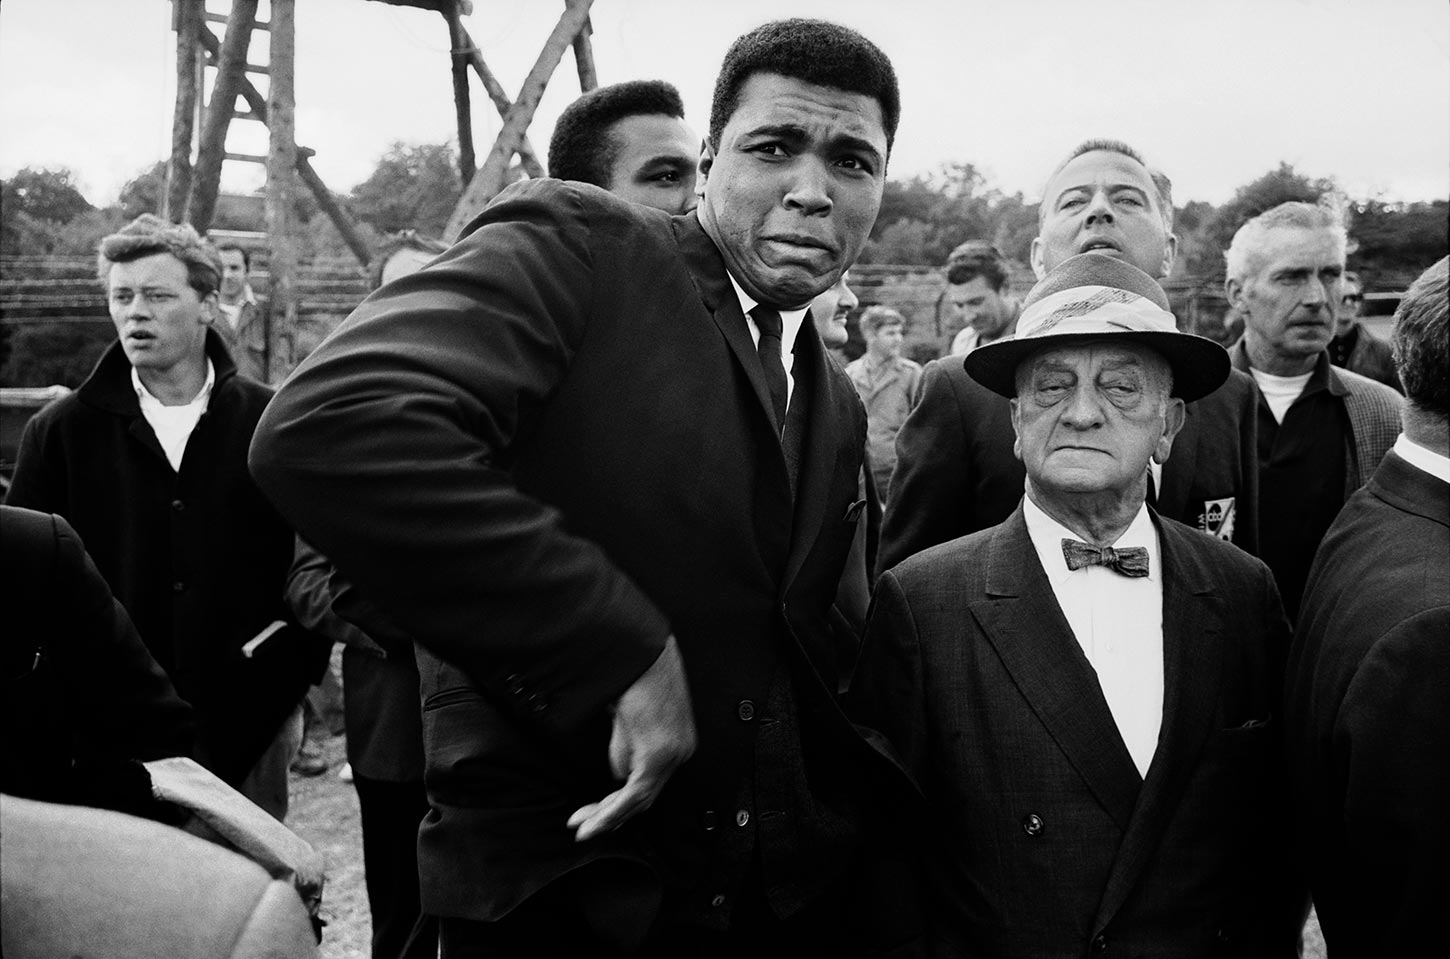 Muhammad Ali is scared by a bee while visiting a movie set in London. England. 1966.